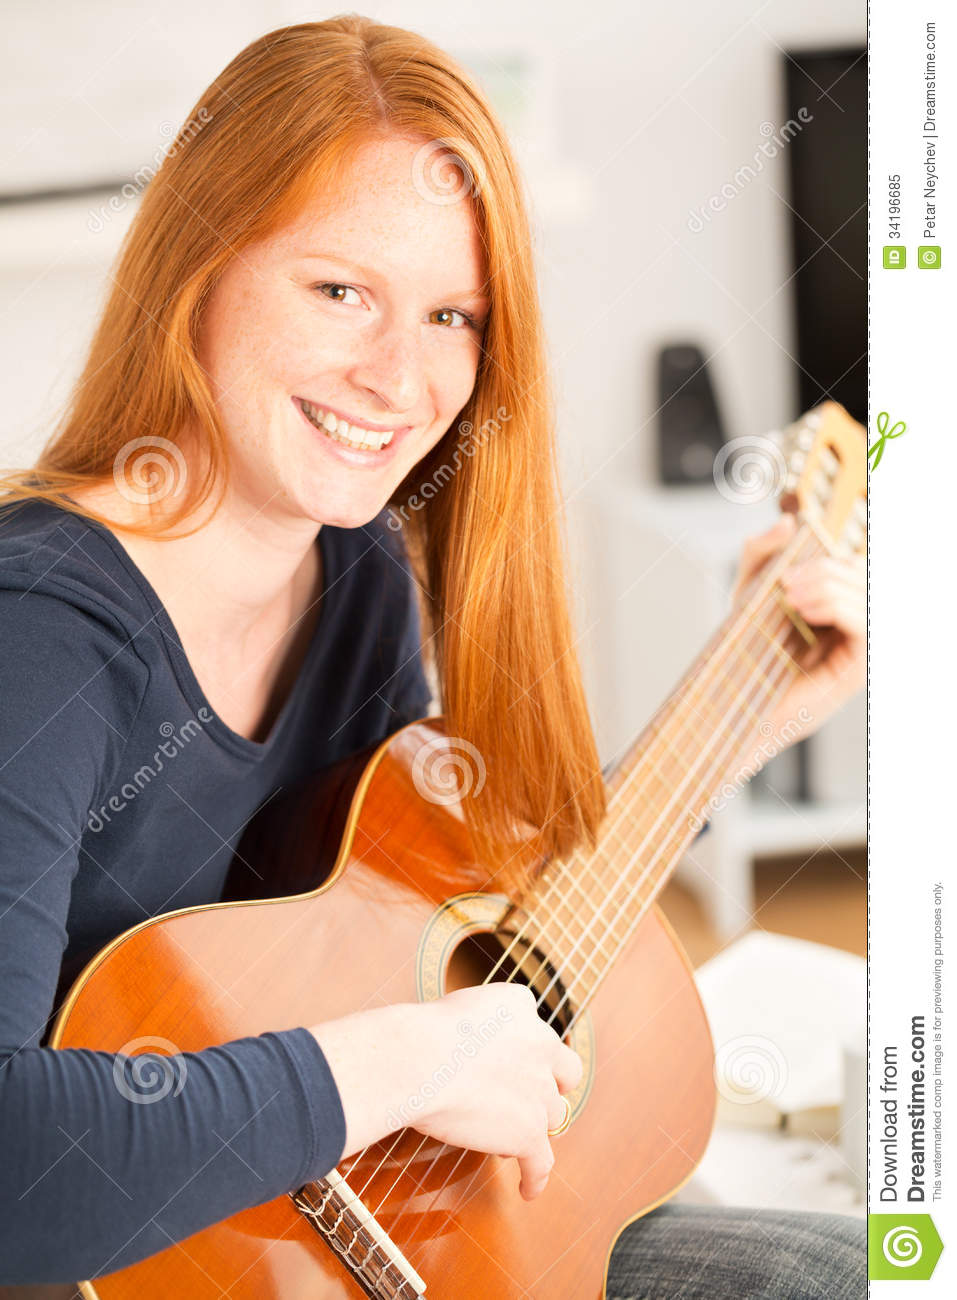 happy-woman-guitar-home-young-playing-acoustic-her-living-room-smiling-camera-34196685.jpg